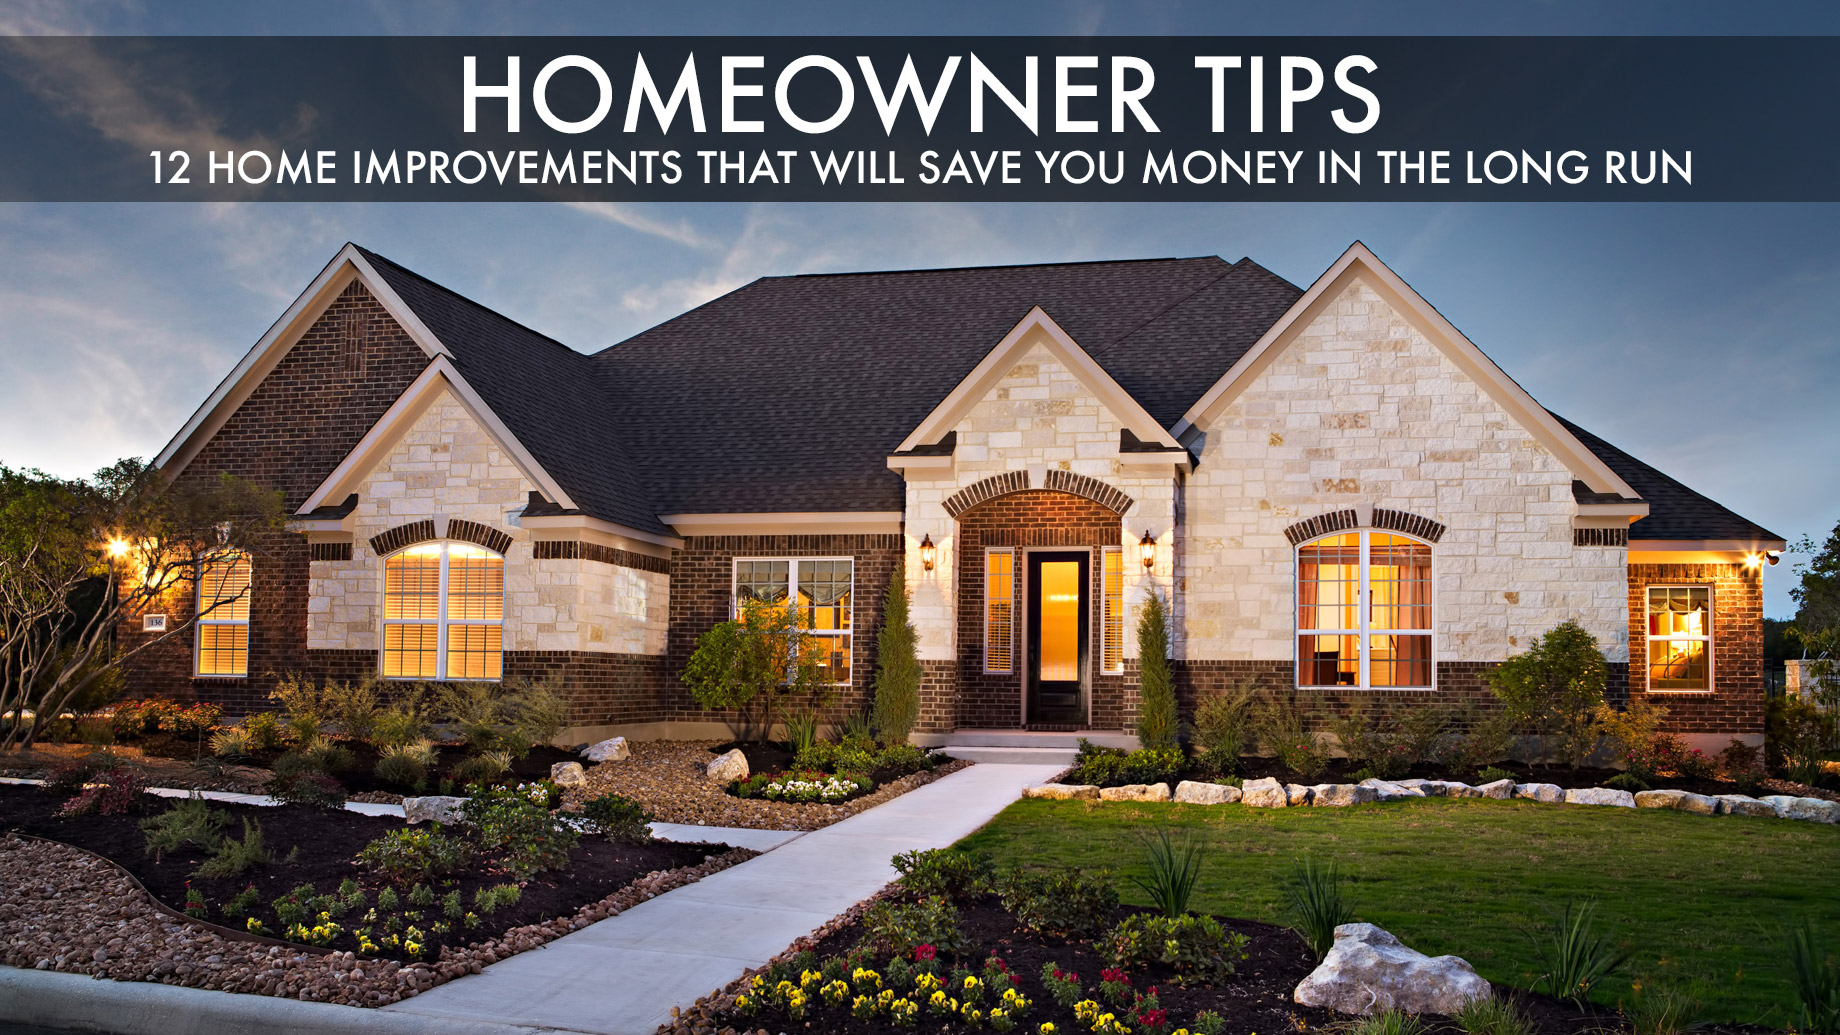 Homeowner Tips – 12 Home Improvements That Will Save You Money in the Long Run